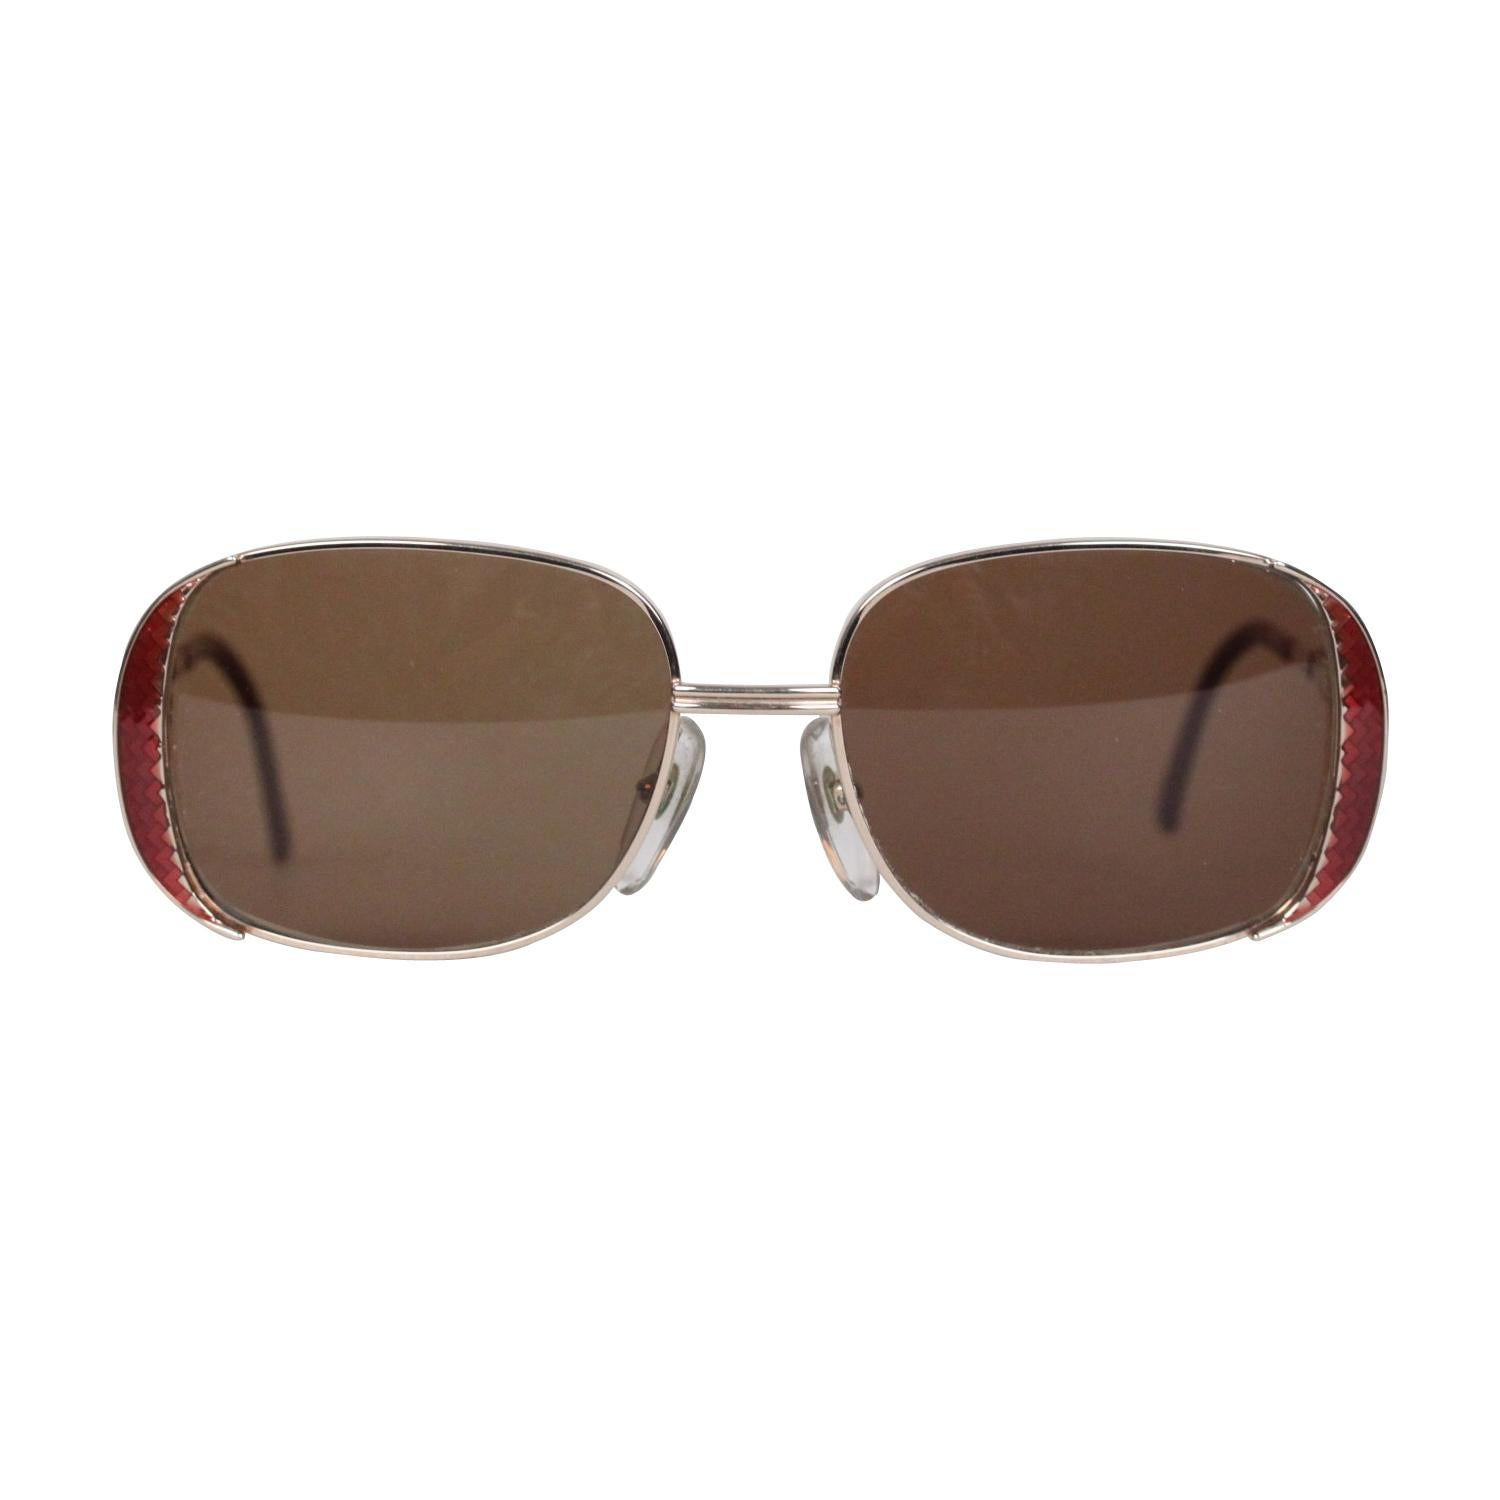 9bf75702f3add Vintage Christian Dior Accessories - 400 For Sale at 1stdibs - Page 2